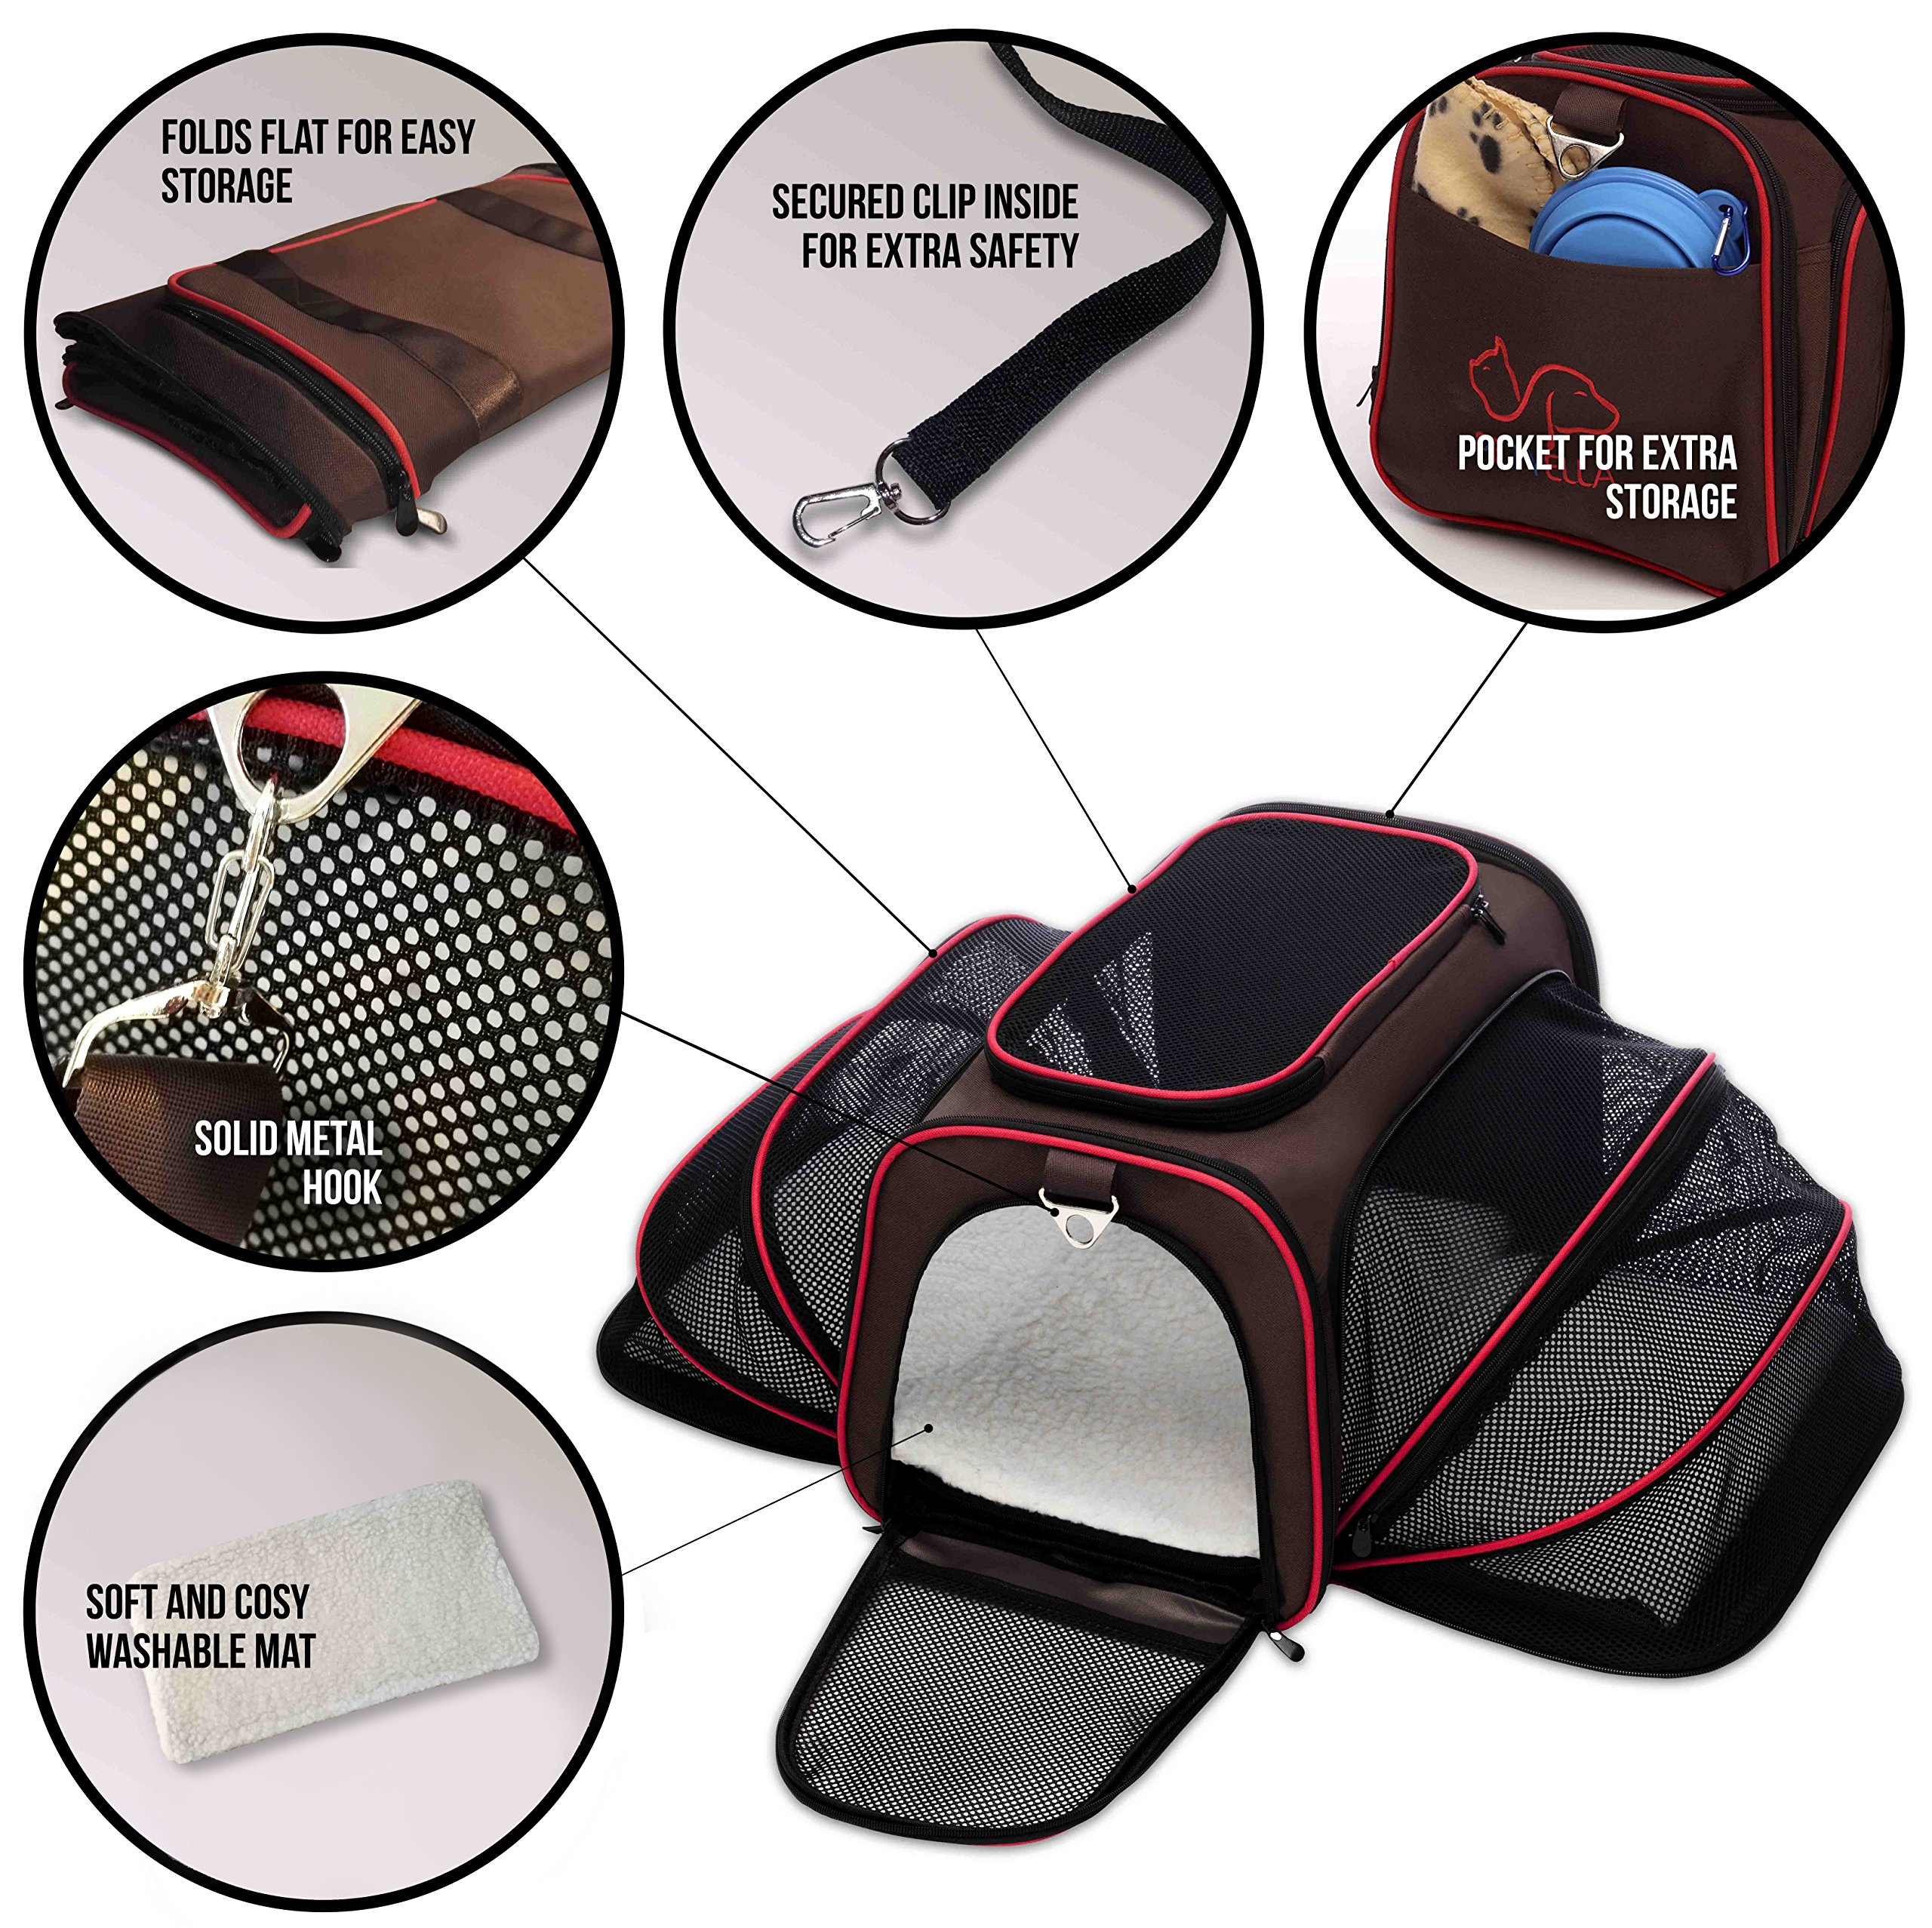 Petyella Cat Carrier Pet Carrier for Small Dogs and Cats Expandable Soft Sided Crate for Pet - Airline Approved Medium Kennel Travel Bag - 2.8 lbs Dog Carriers with Bonus Blanket and Bowl,Dark Brown by Petyella (Image #5)